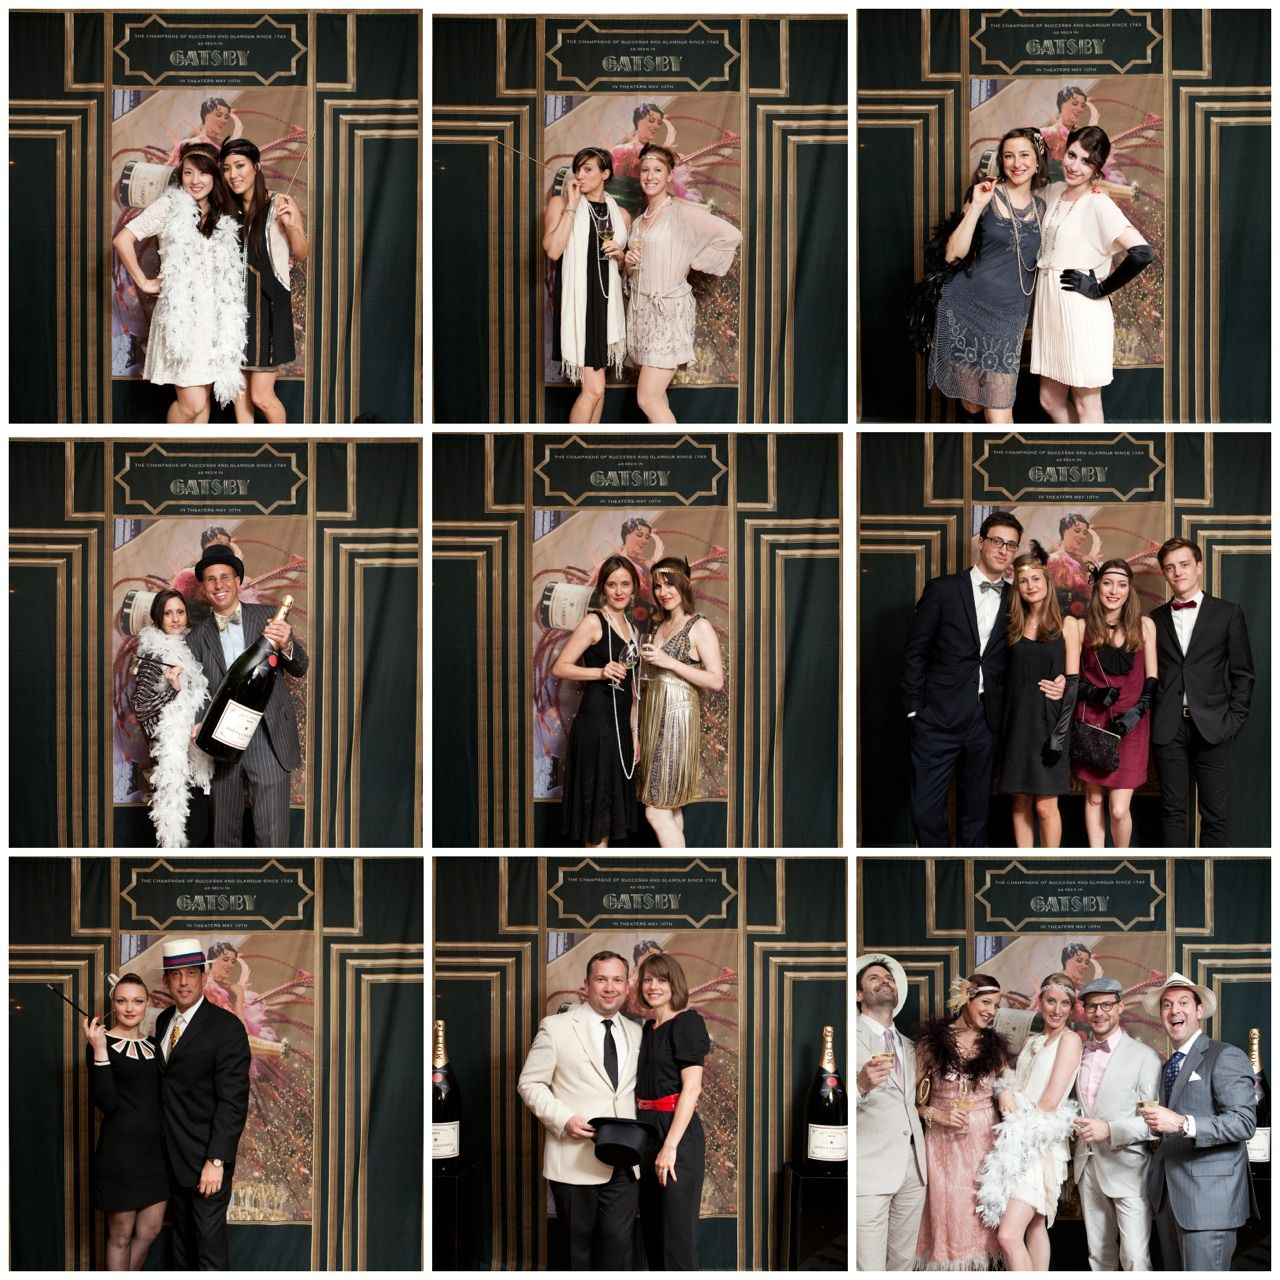 wedding reception photo booth singapore%0A Gatsby photo booth props  strands of pearls  mustaches on stick  feather  boas